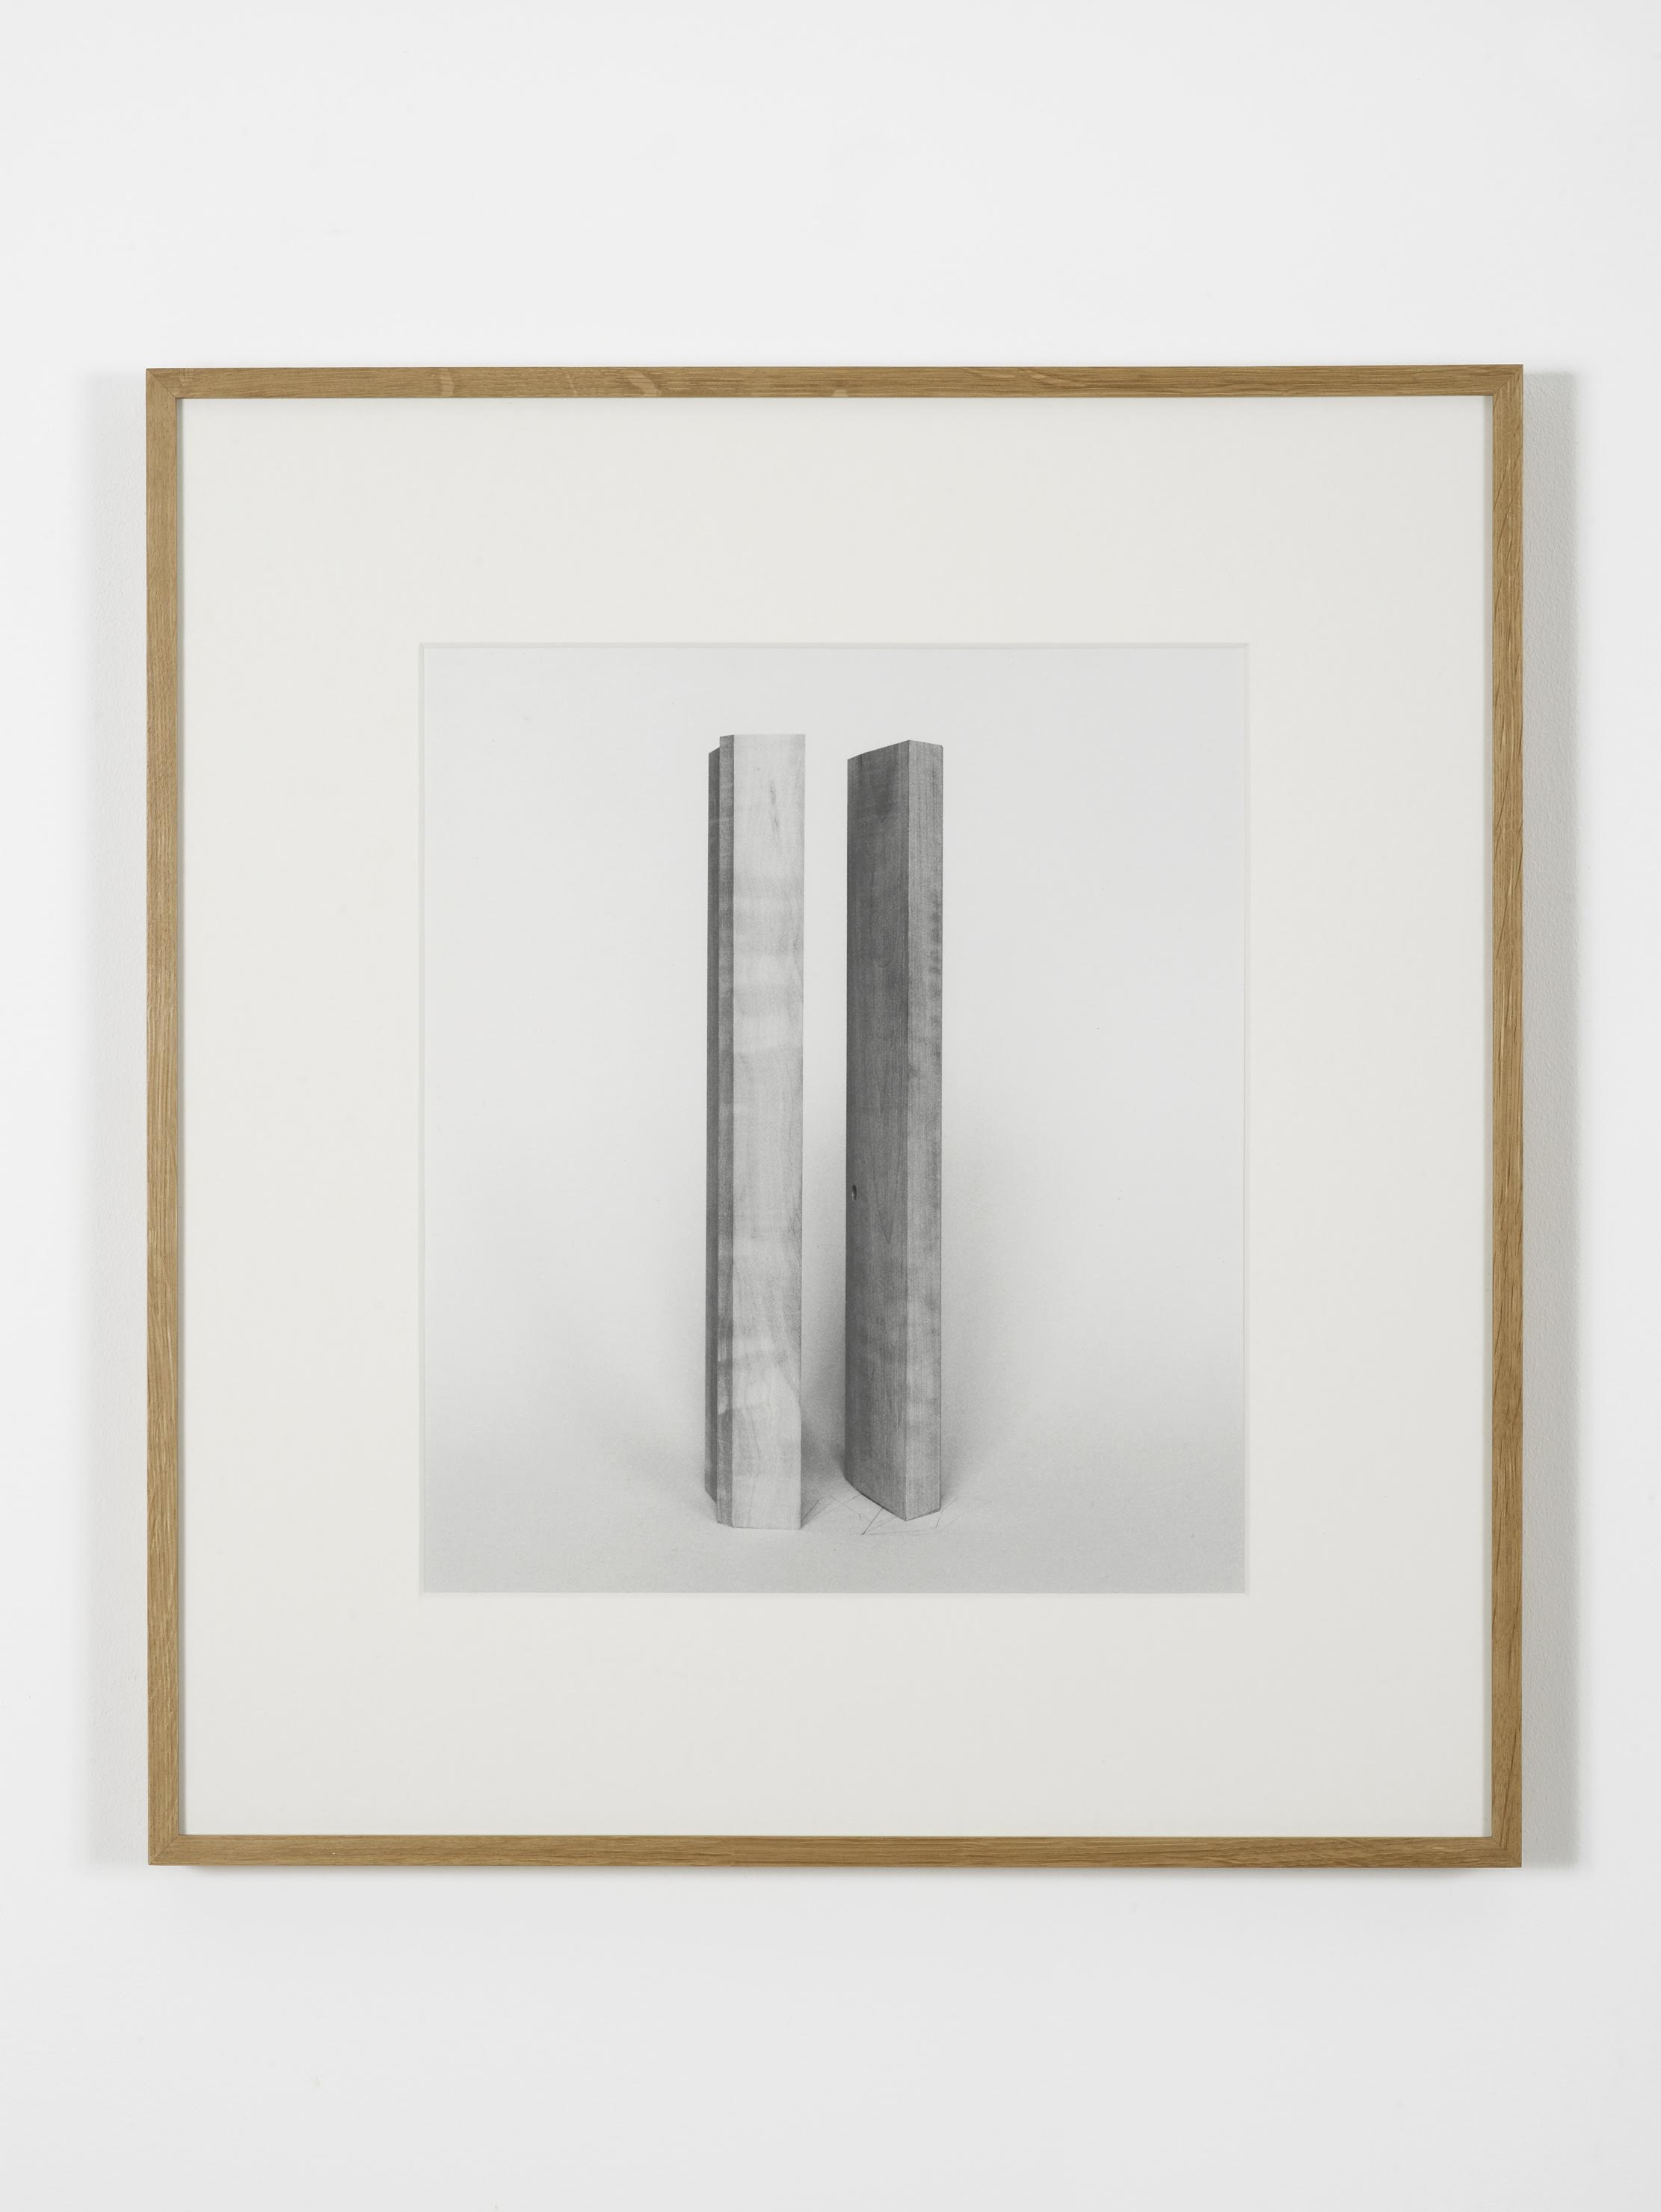 Becky Beasley,  Extensions (Elaboration No. 1) , 2012. Gelatin silverprint, 164.5 x 123 cm, framed 175.3 x 134 cm. Courtesy Laura Bartlett Gallery, London.